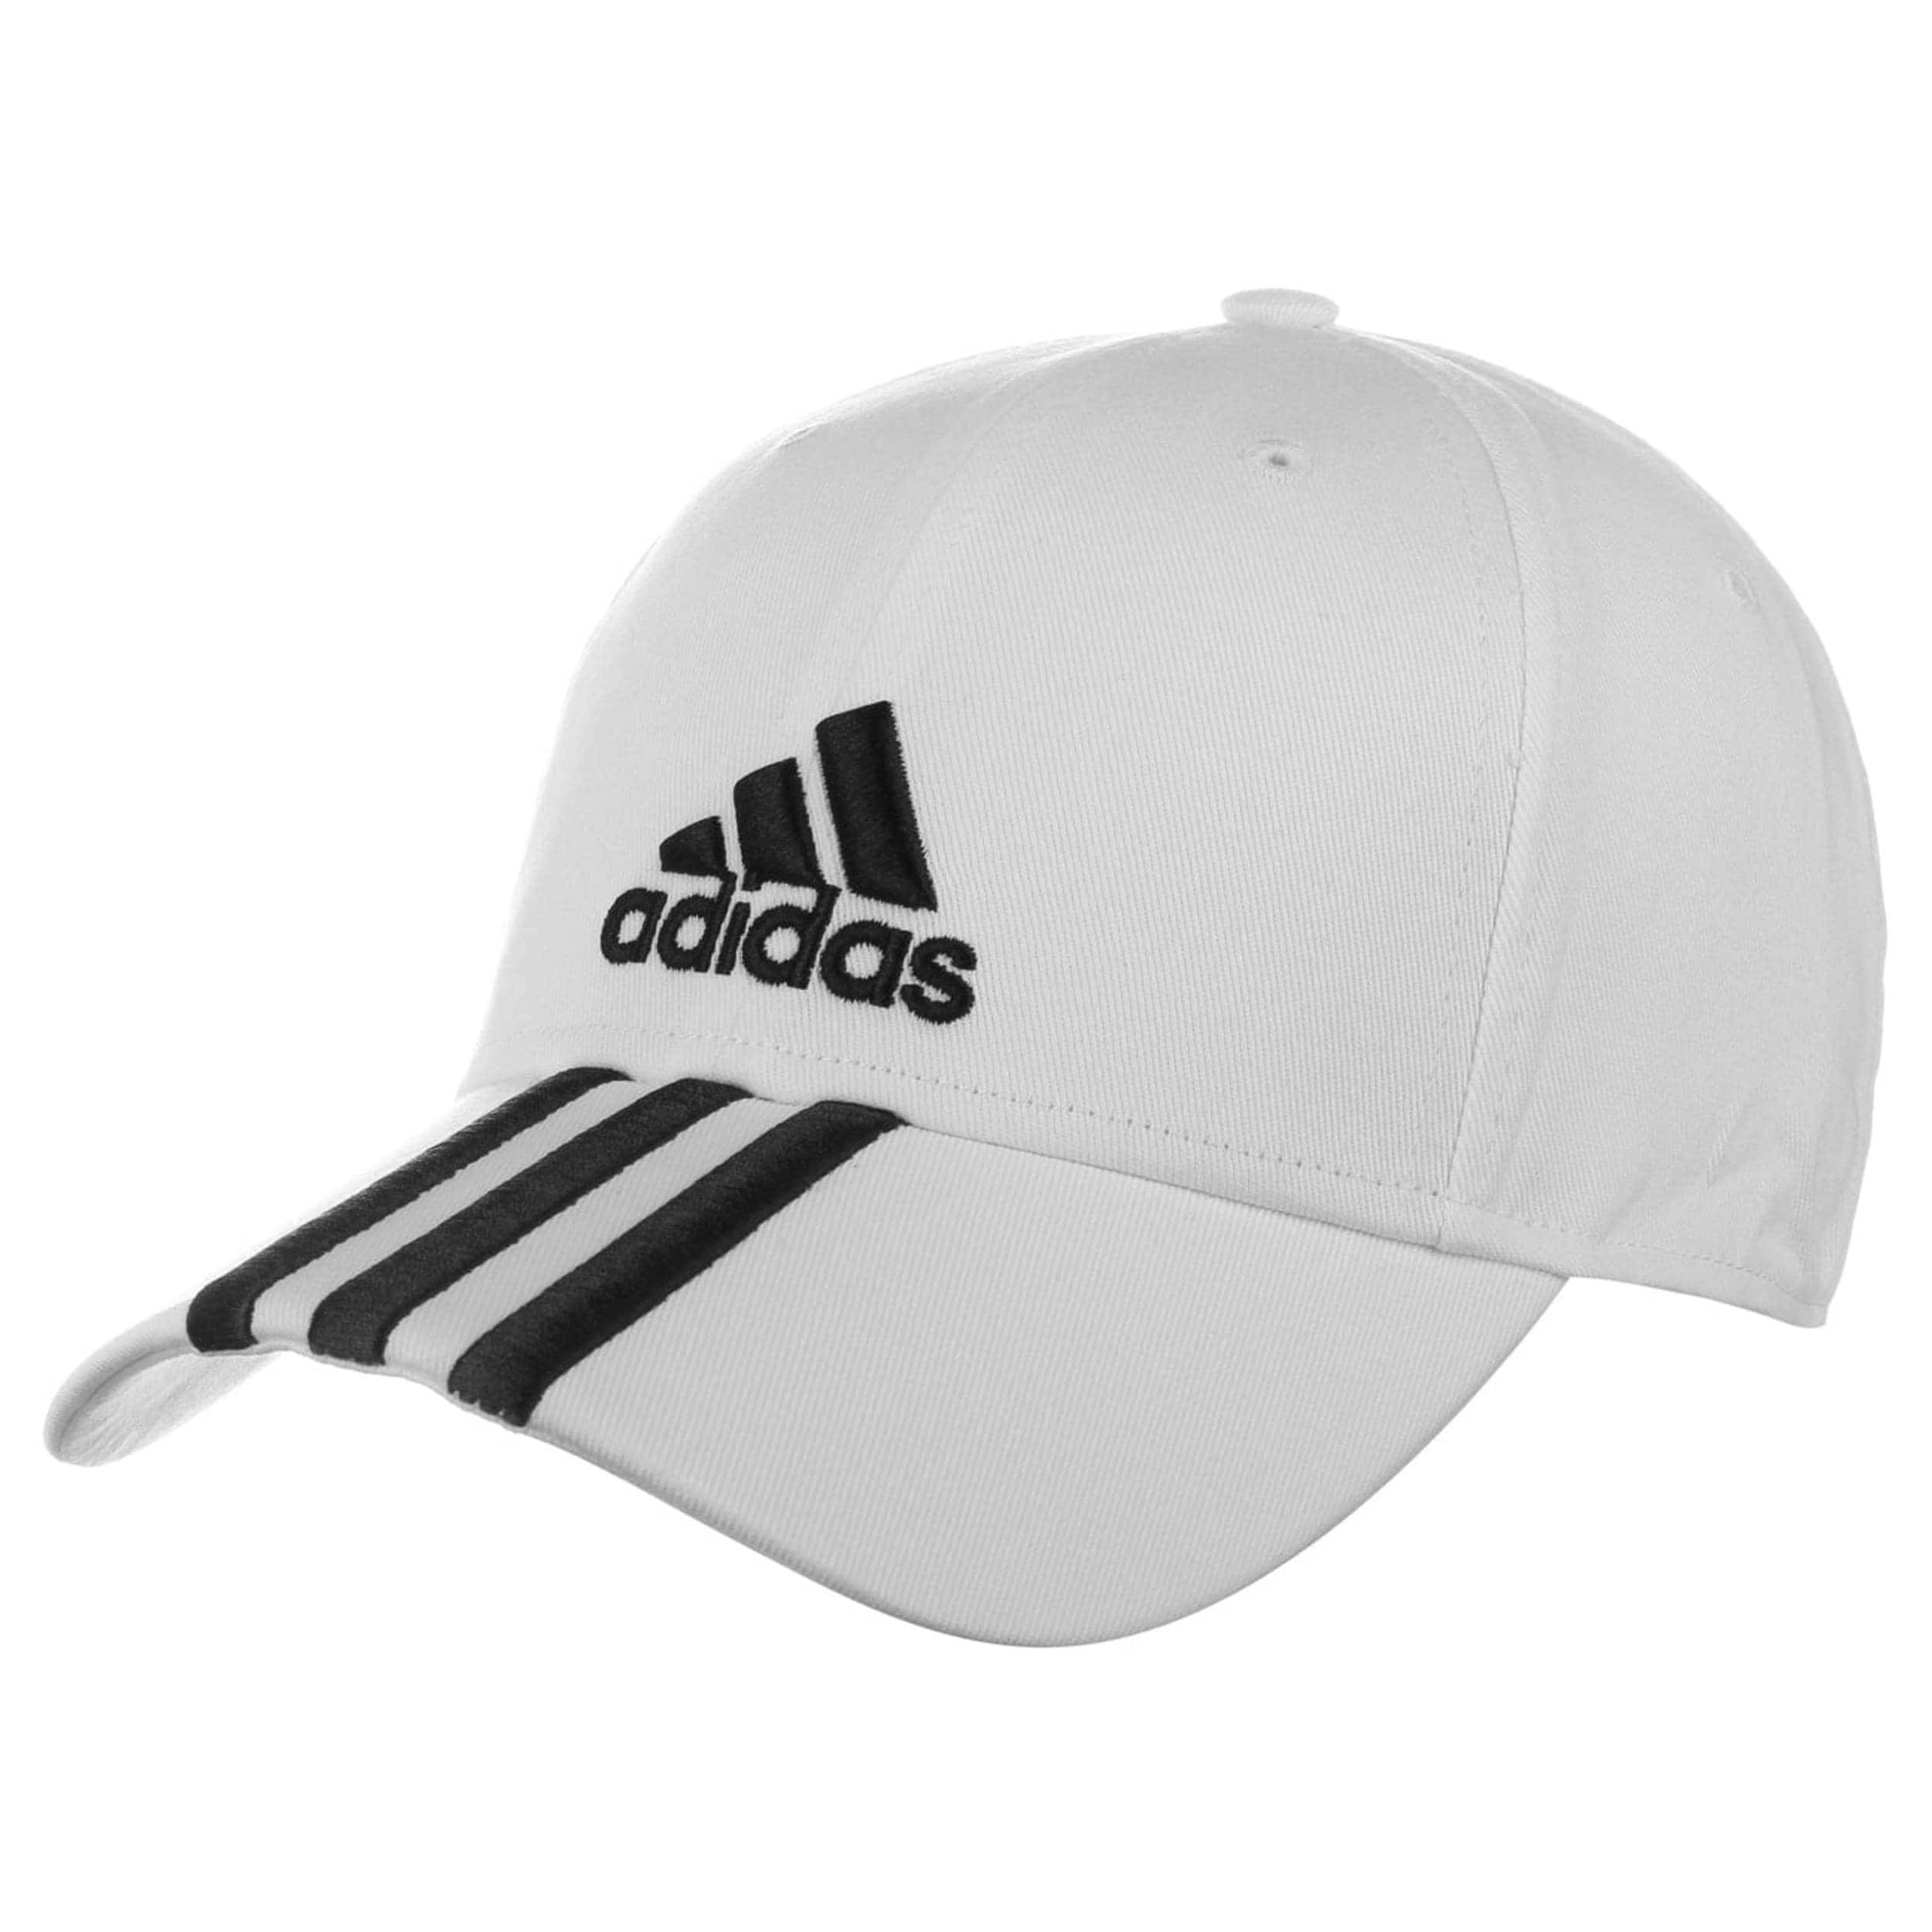 Performance Essentials Cap by adidas